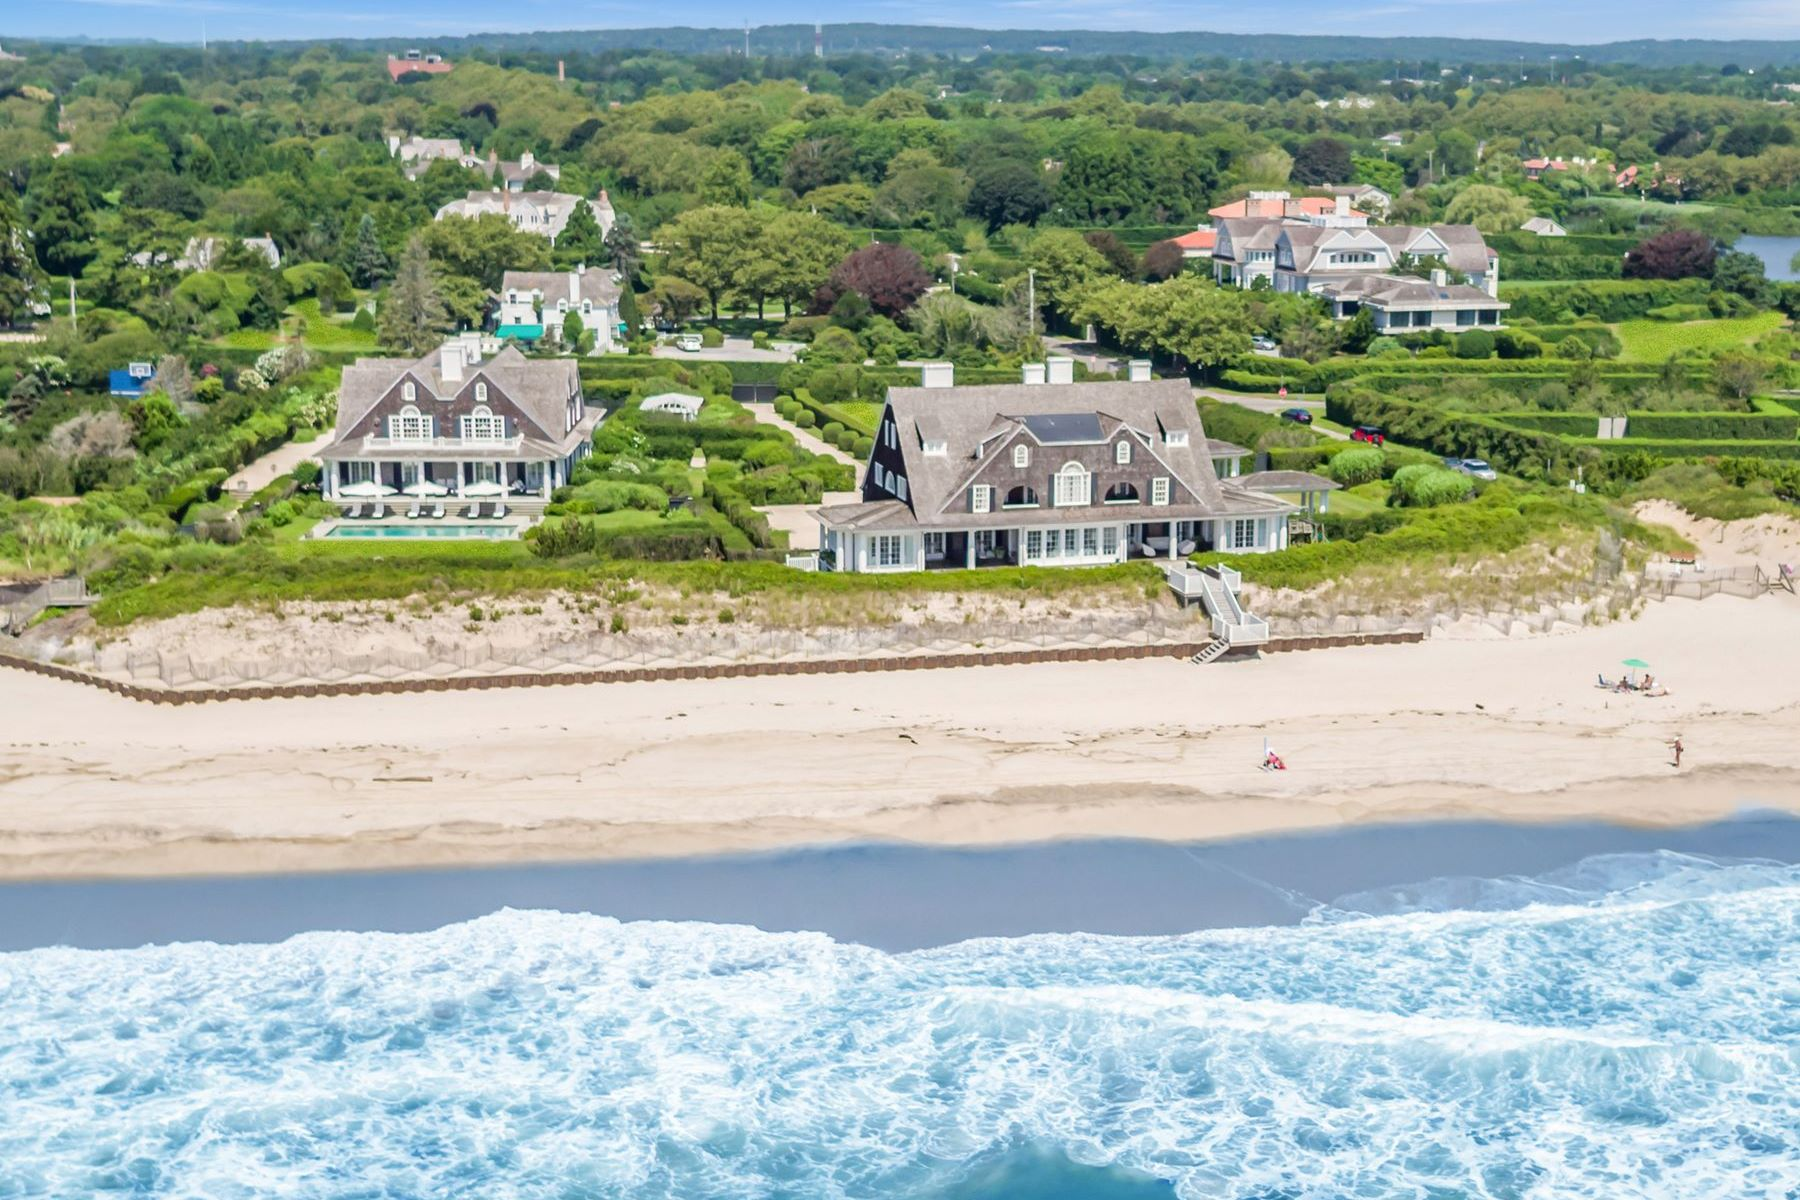 Single Family Homes for Sale at Historic Gin Lane Oceanfront 376 Gin Lane Southampton, New York 11968 United States